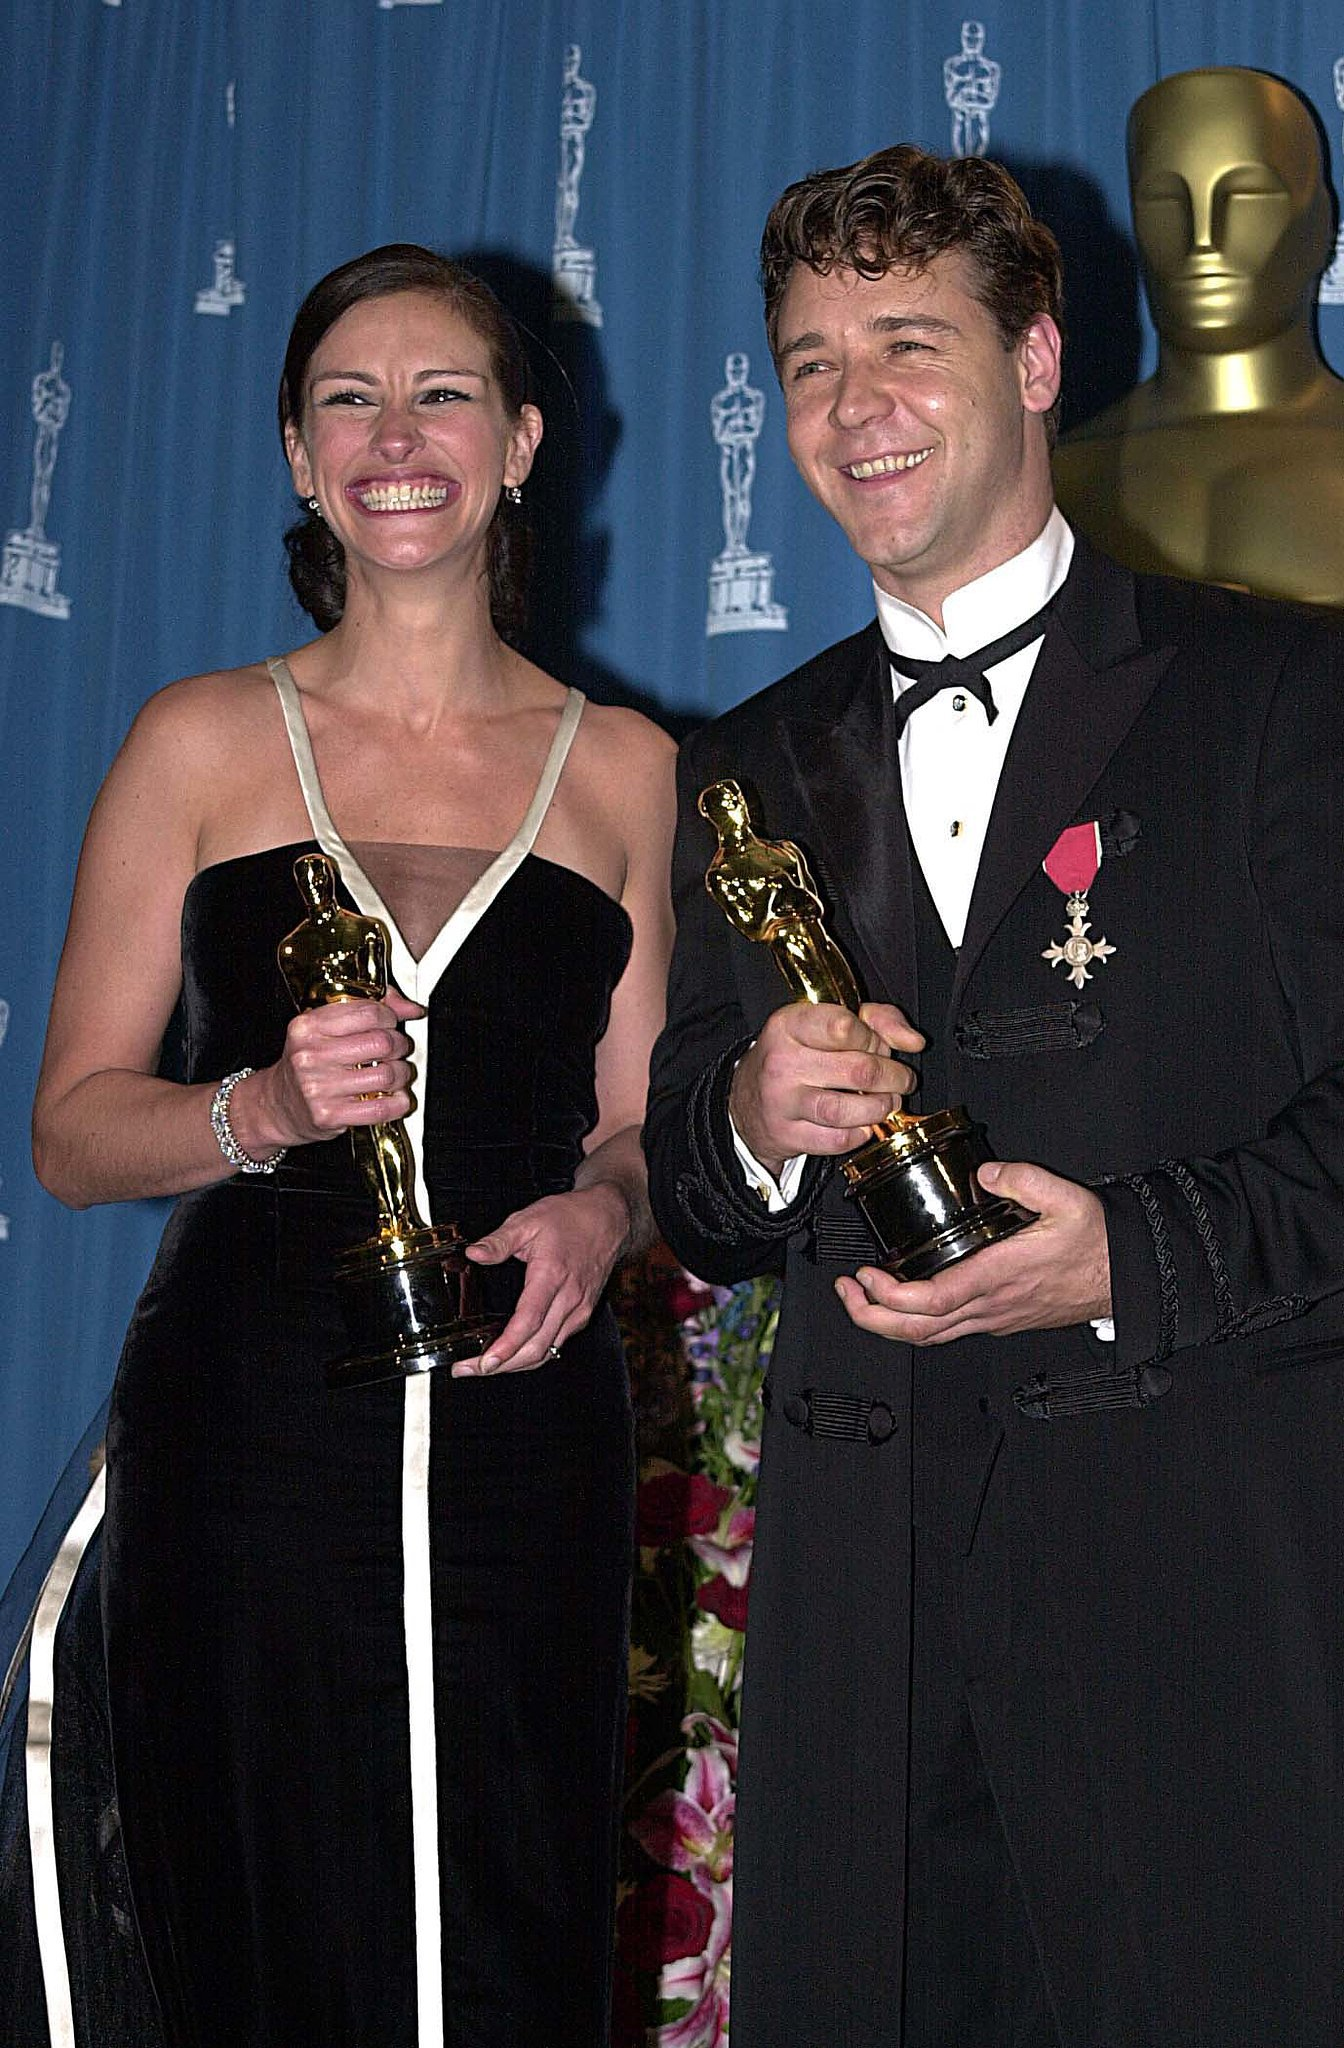 Julia Roberts won for Erin Brockovich the same year Russell Crowe did for Gladiator, and the two met up in the press room during the 2001 show. He was nominated both the year before and the year after, as well.